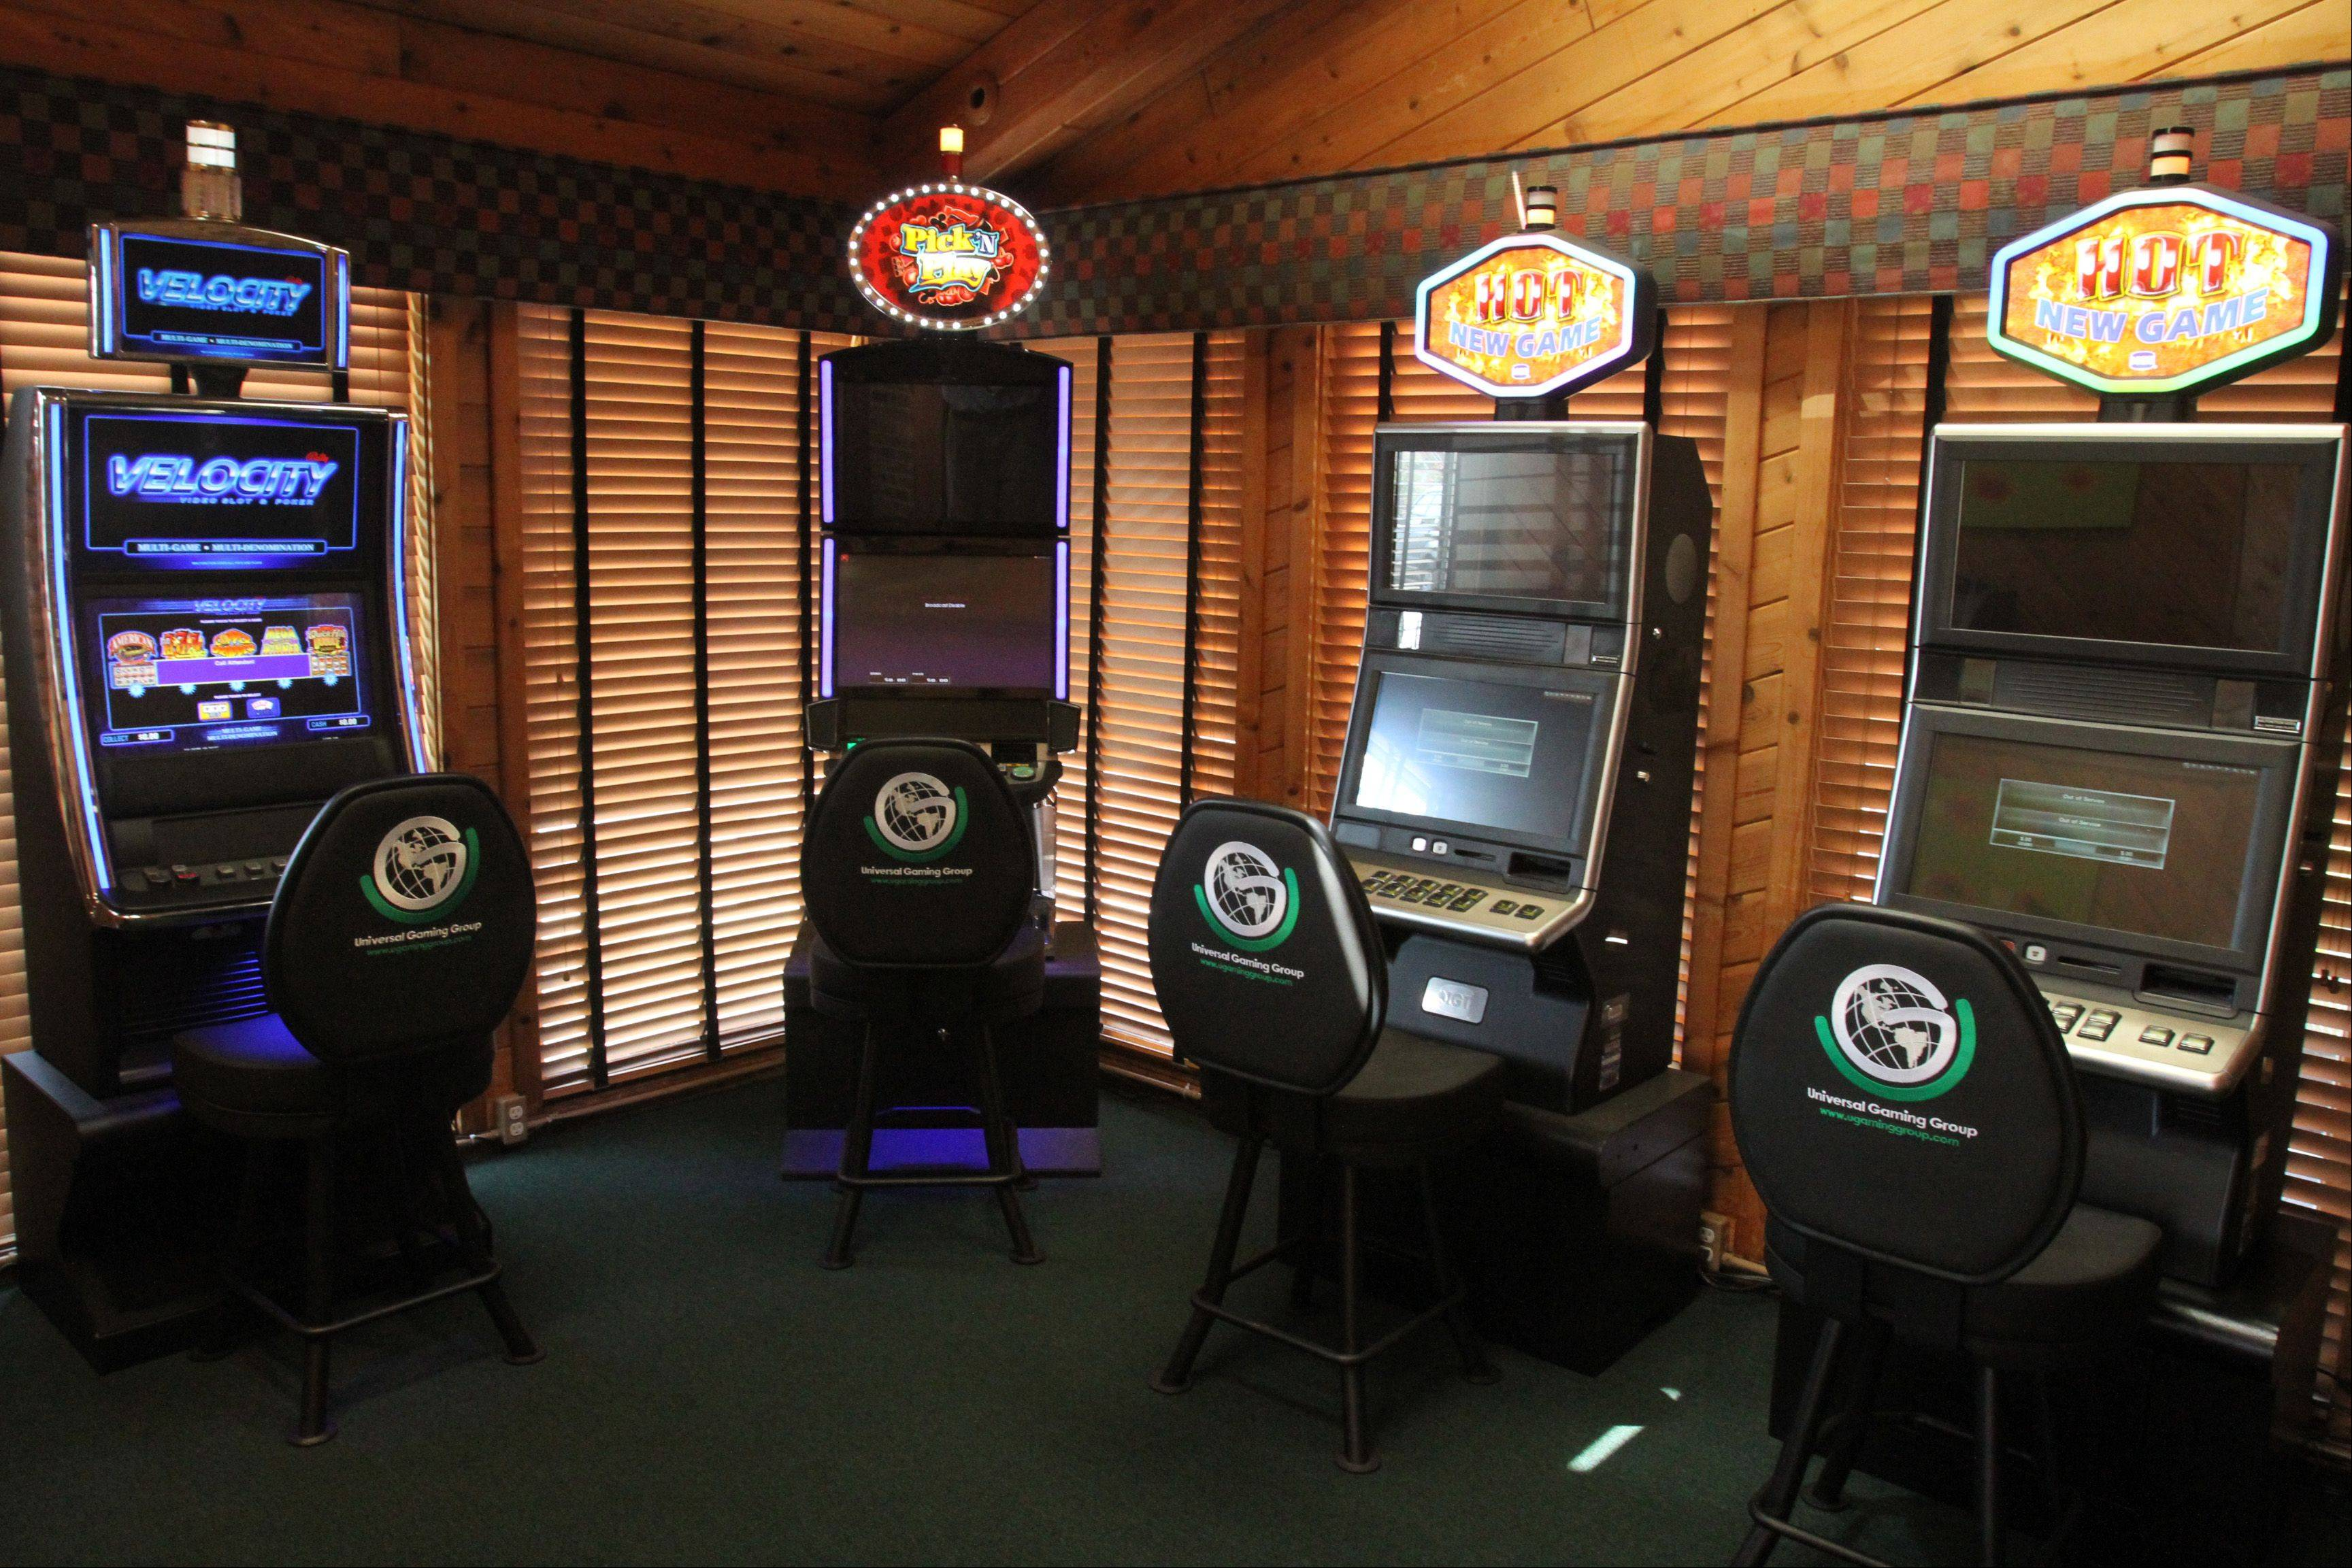 Universal Gaming Group video gambling machines at The Assembly American Bar & Cafe in Hoffman Estates.